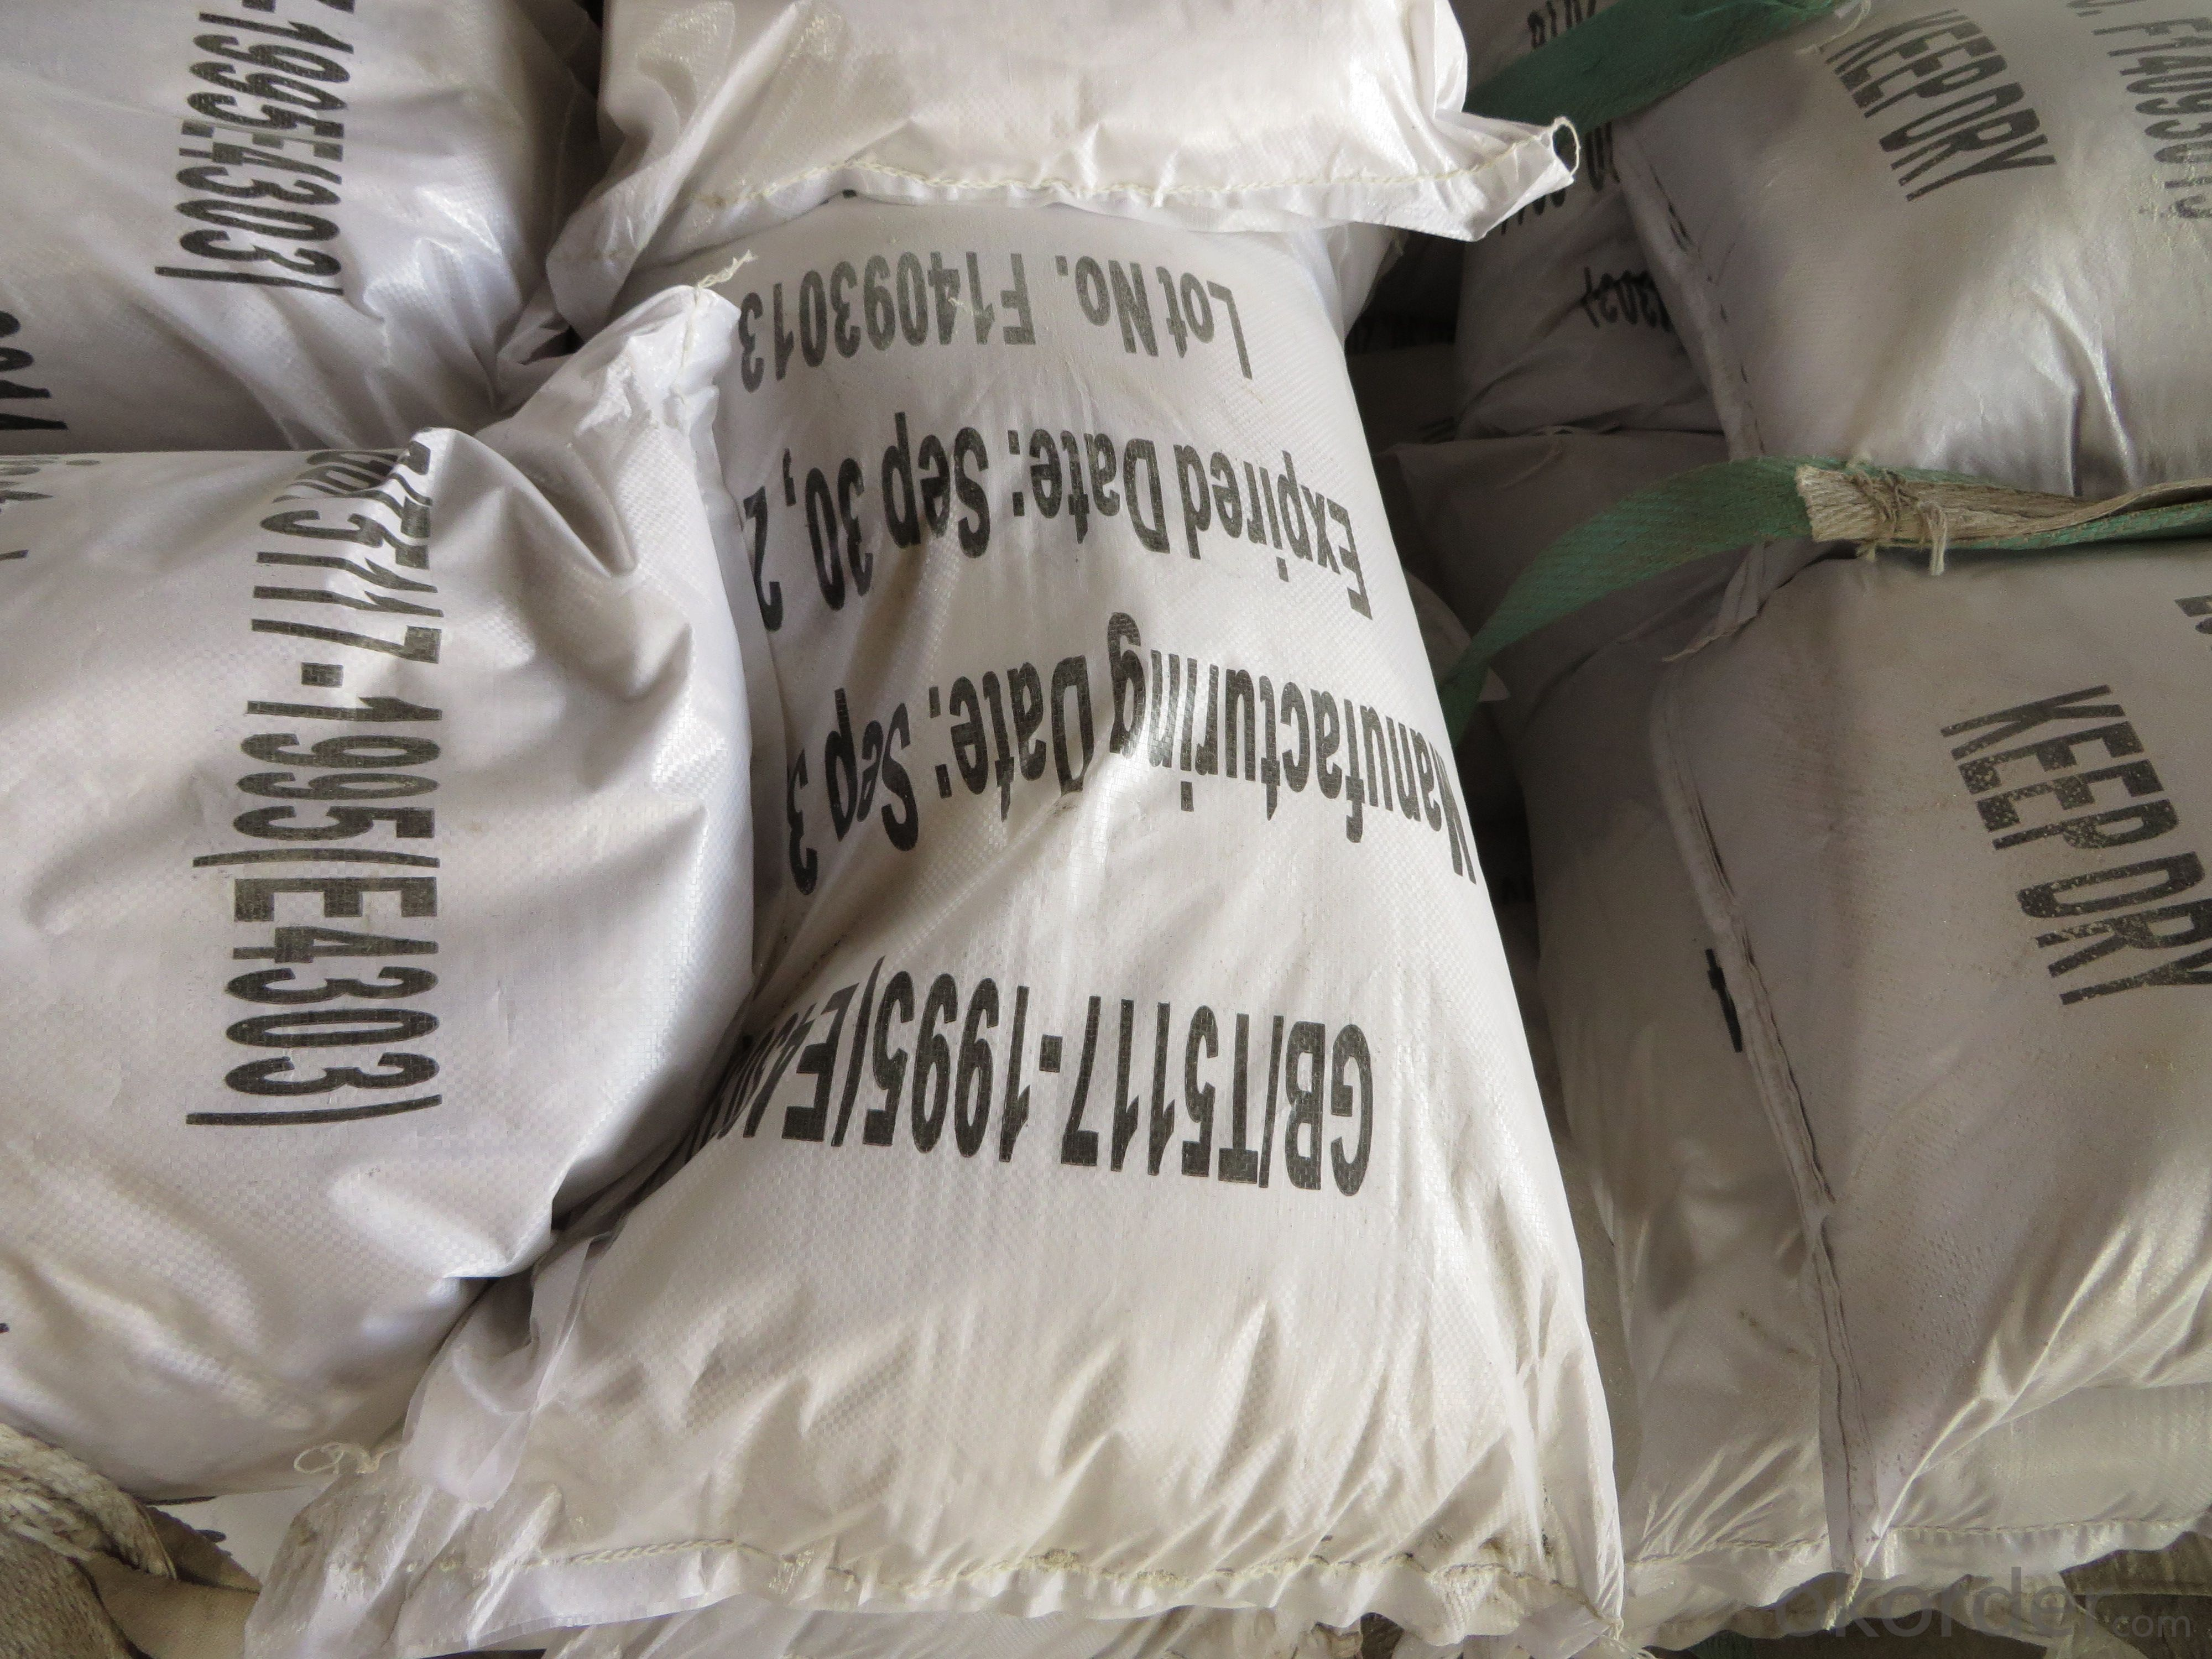 welding dry blended powder for produce AWS E6013 electrode